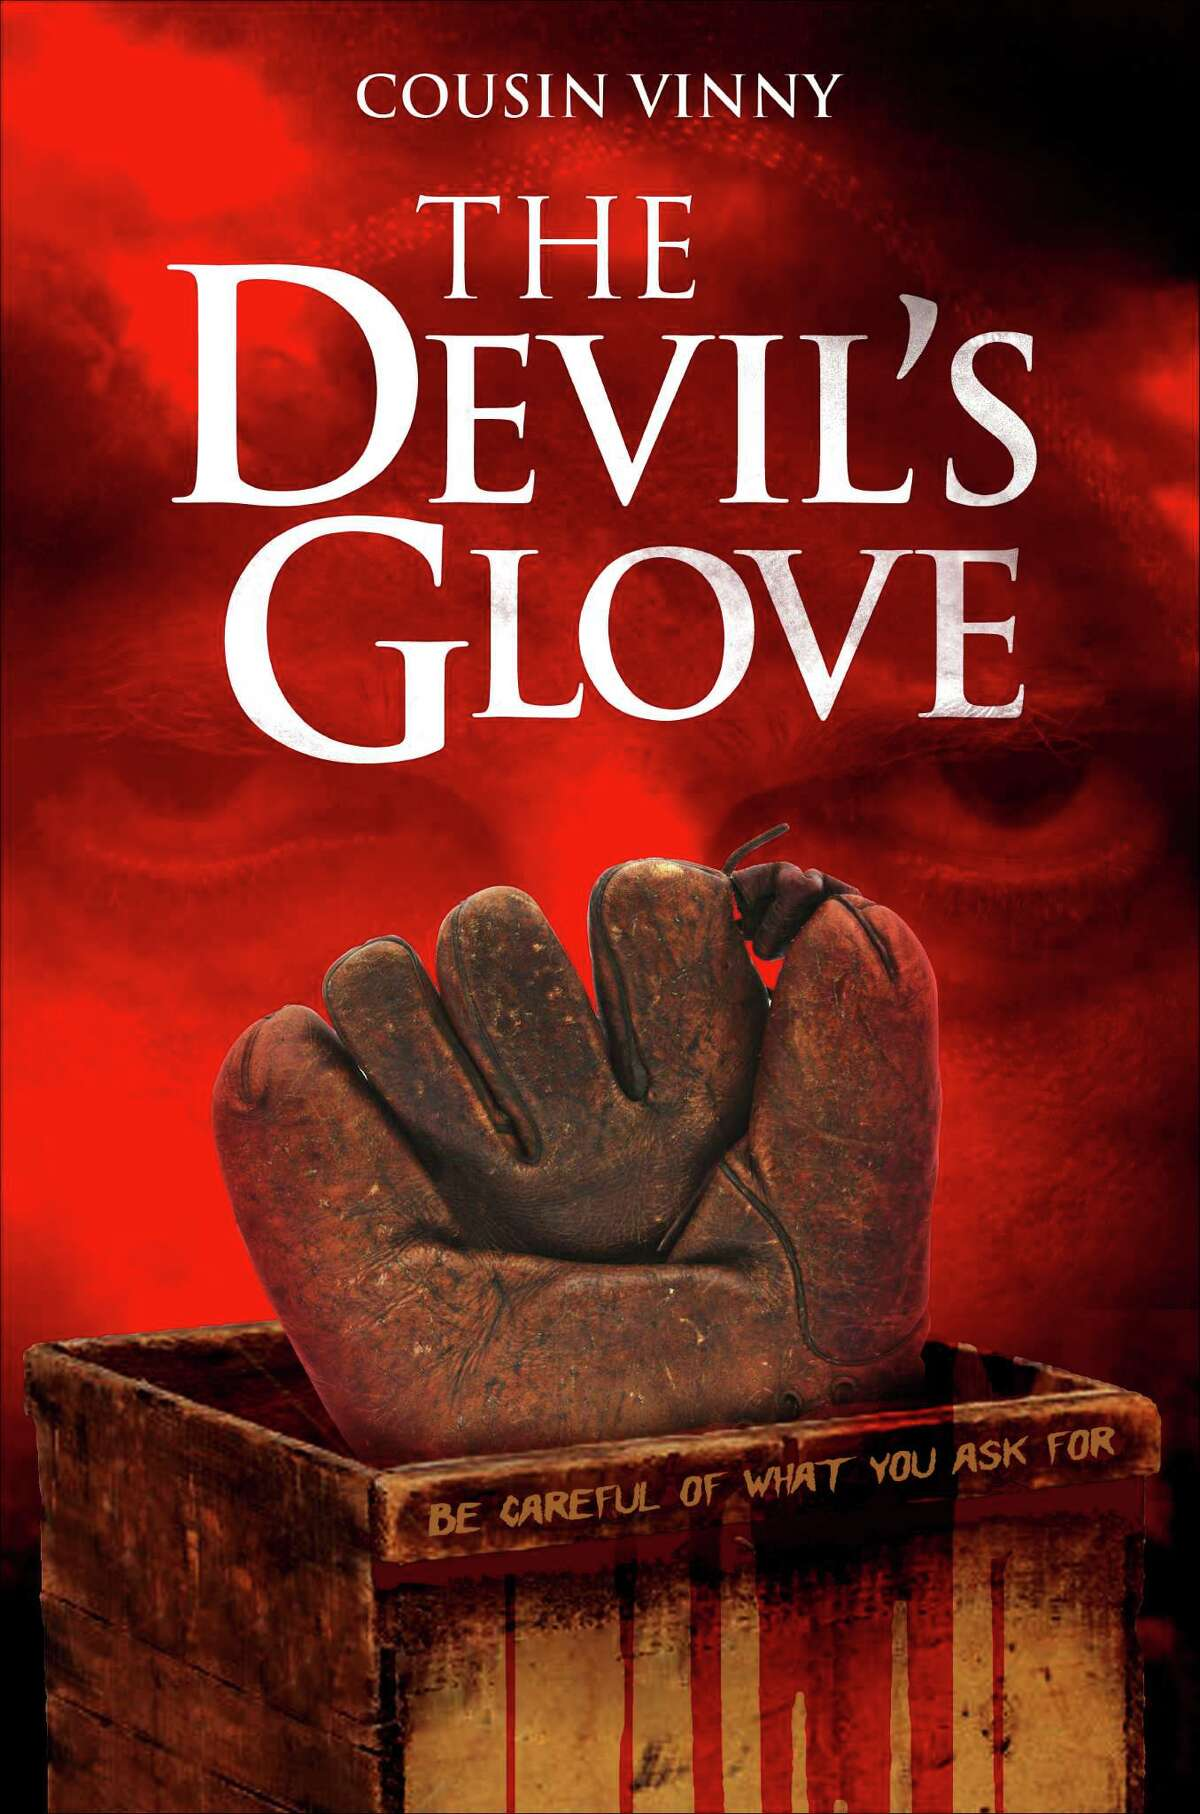 Louis Agnello Jr., also known as Cousin Vinny, has written a story involving young men's dreams of baseball glory and the age-old battle between good and evil. Satan himself is among the characters. The book is called ìThe Devilís Gloveî and Agnello will appear at signings this weekend in Southbury's library and Barnes & Noble in Danbury.